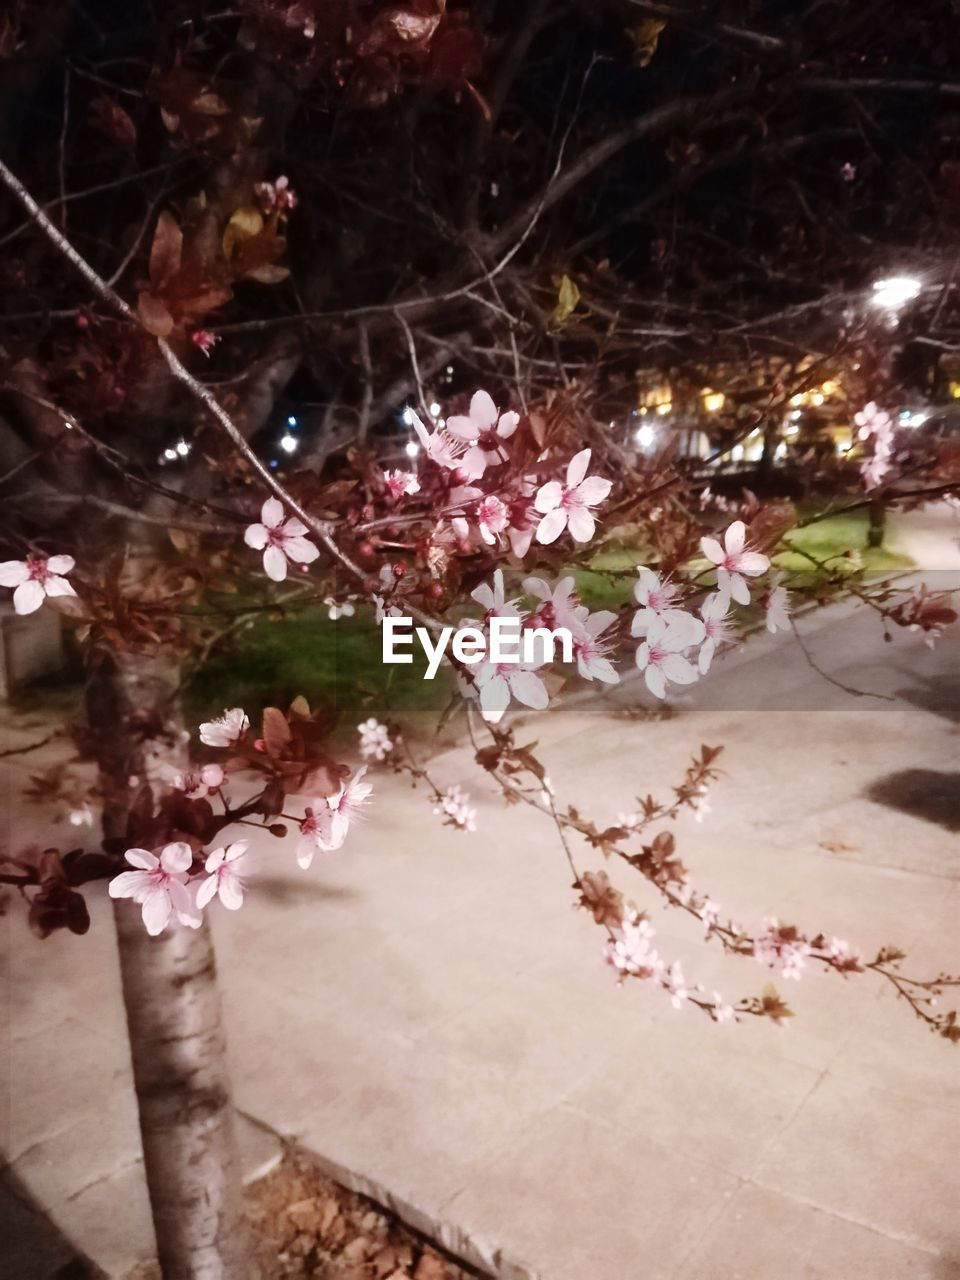 plant, flower, flowering plant, tree, freshness, nature, beauty in nature, growth, fragility, vulnerability, no people, pink color, night, illuminated, close-up, springtime, outdoors, branch, blossom, cherry blossom, cherry tree